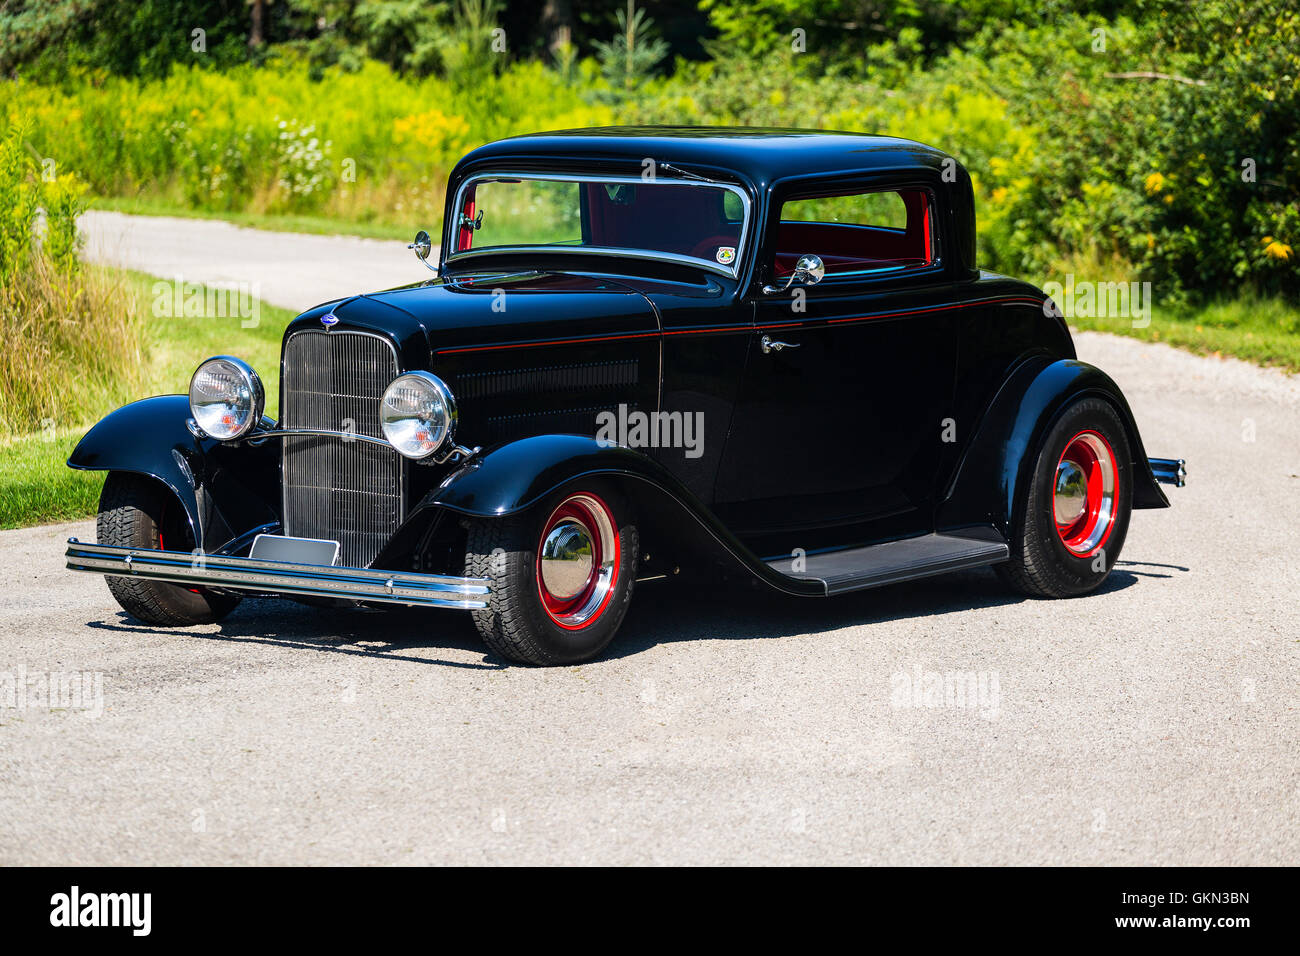 Coupe Ford 1932 Ford 3 Window Coupe Hot Rod Stock Photo 115404345 Alamy